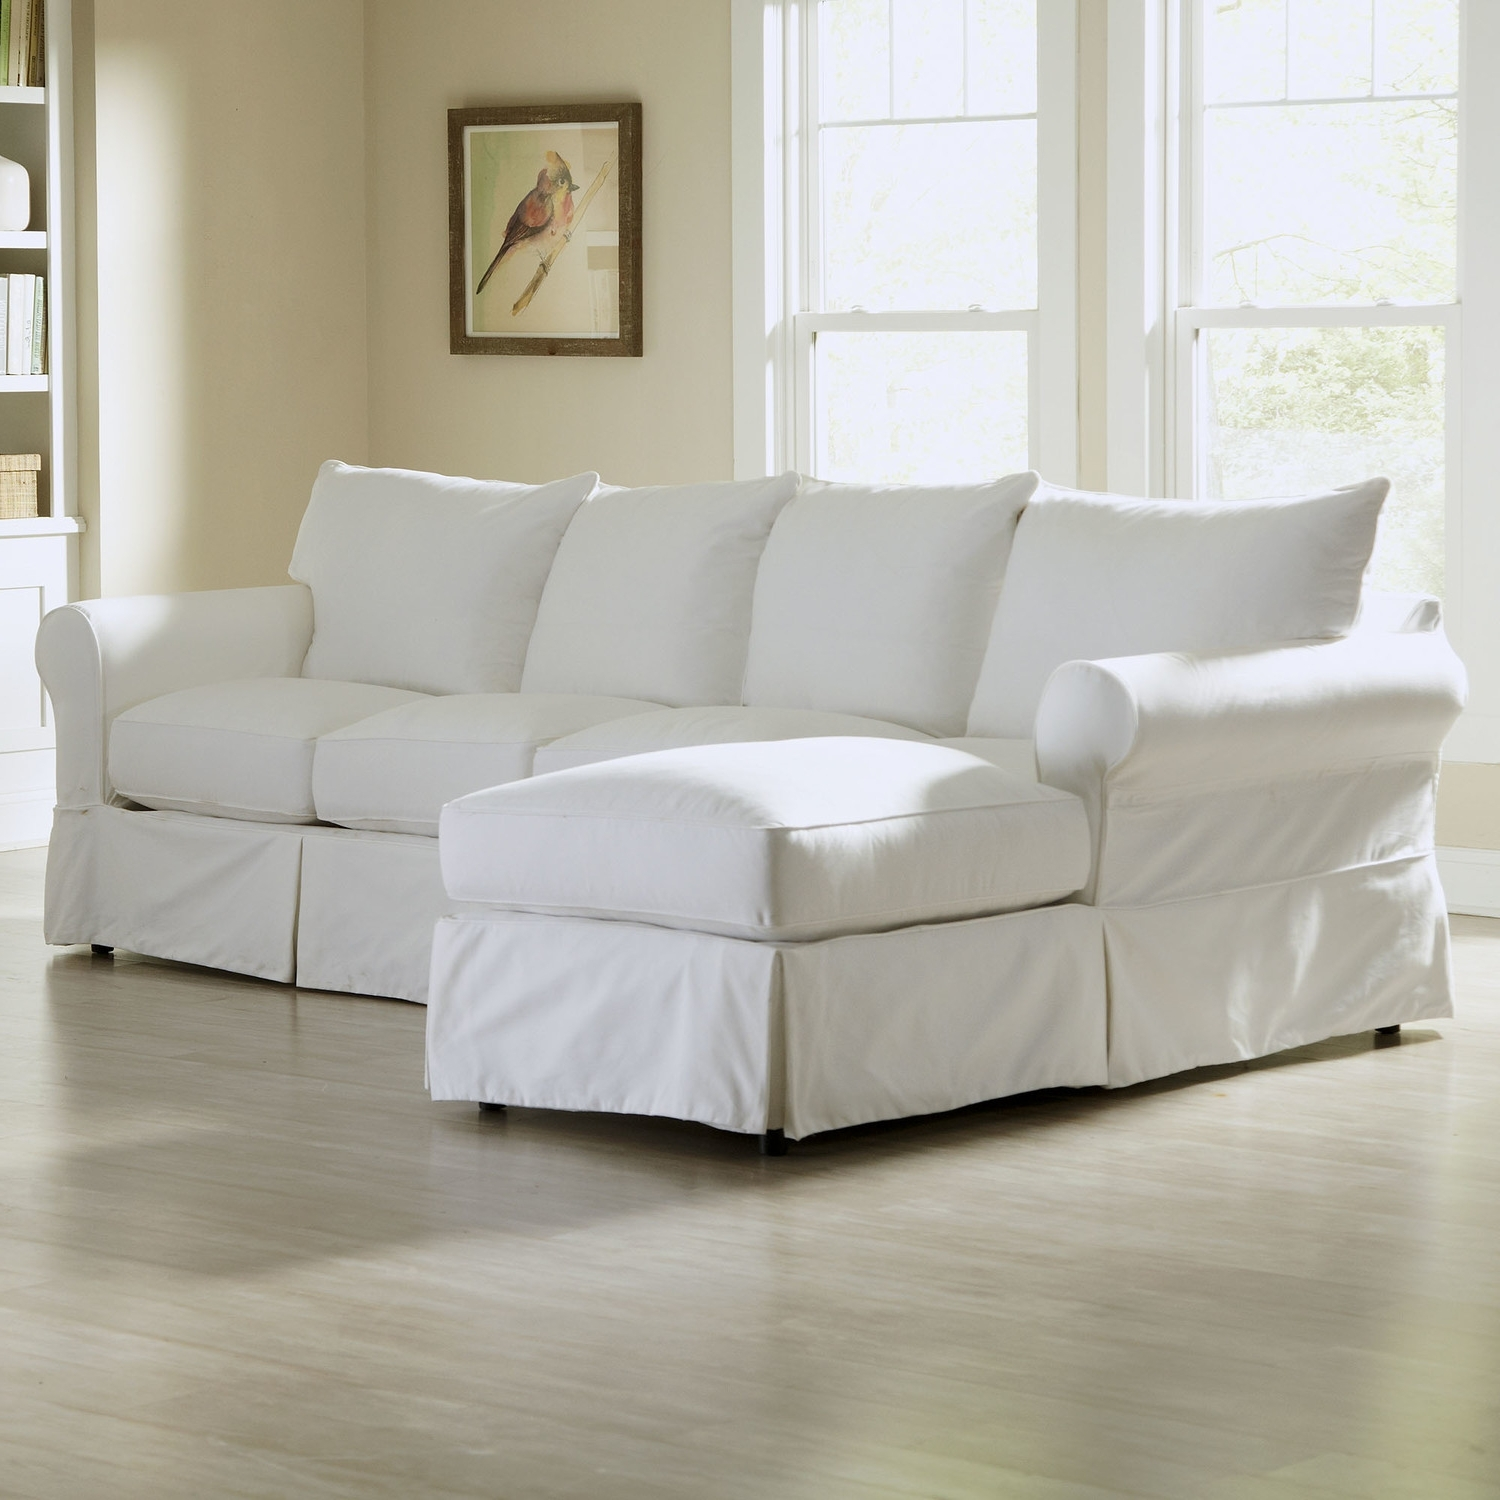 Down Filled Leather Sofa (View 1 of 15)